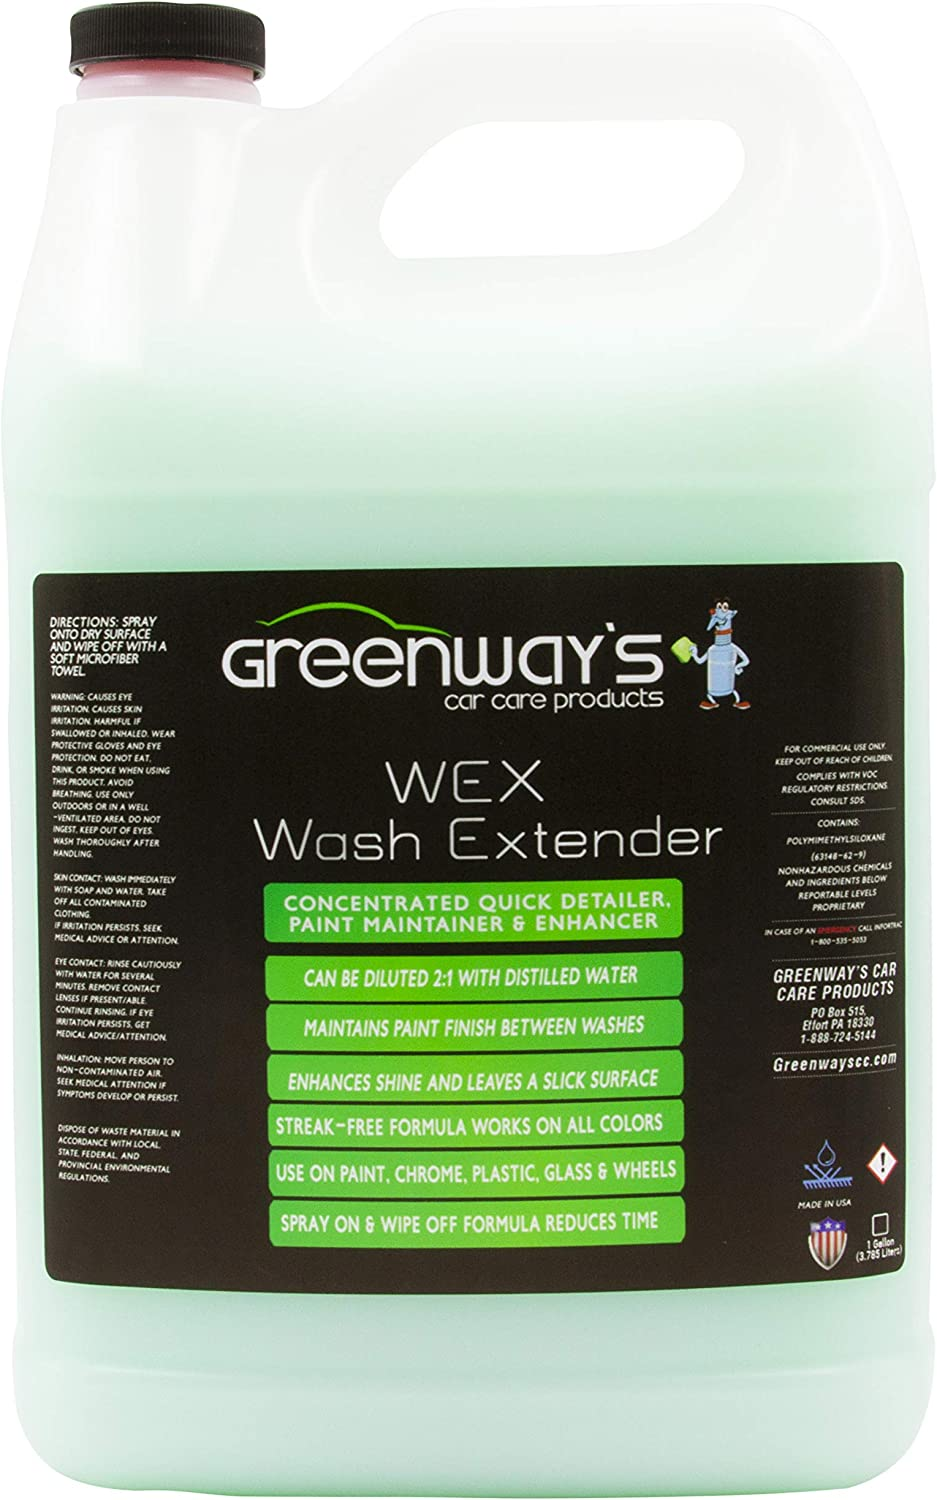 Wex Wash Extender Max 66% OFF New Free Shipping Spray Car Concentrate- Detailer Waterless